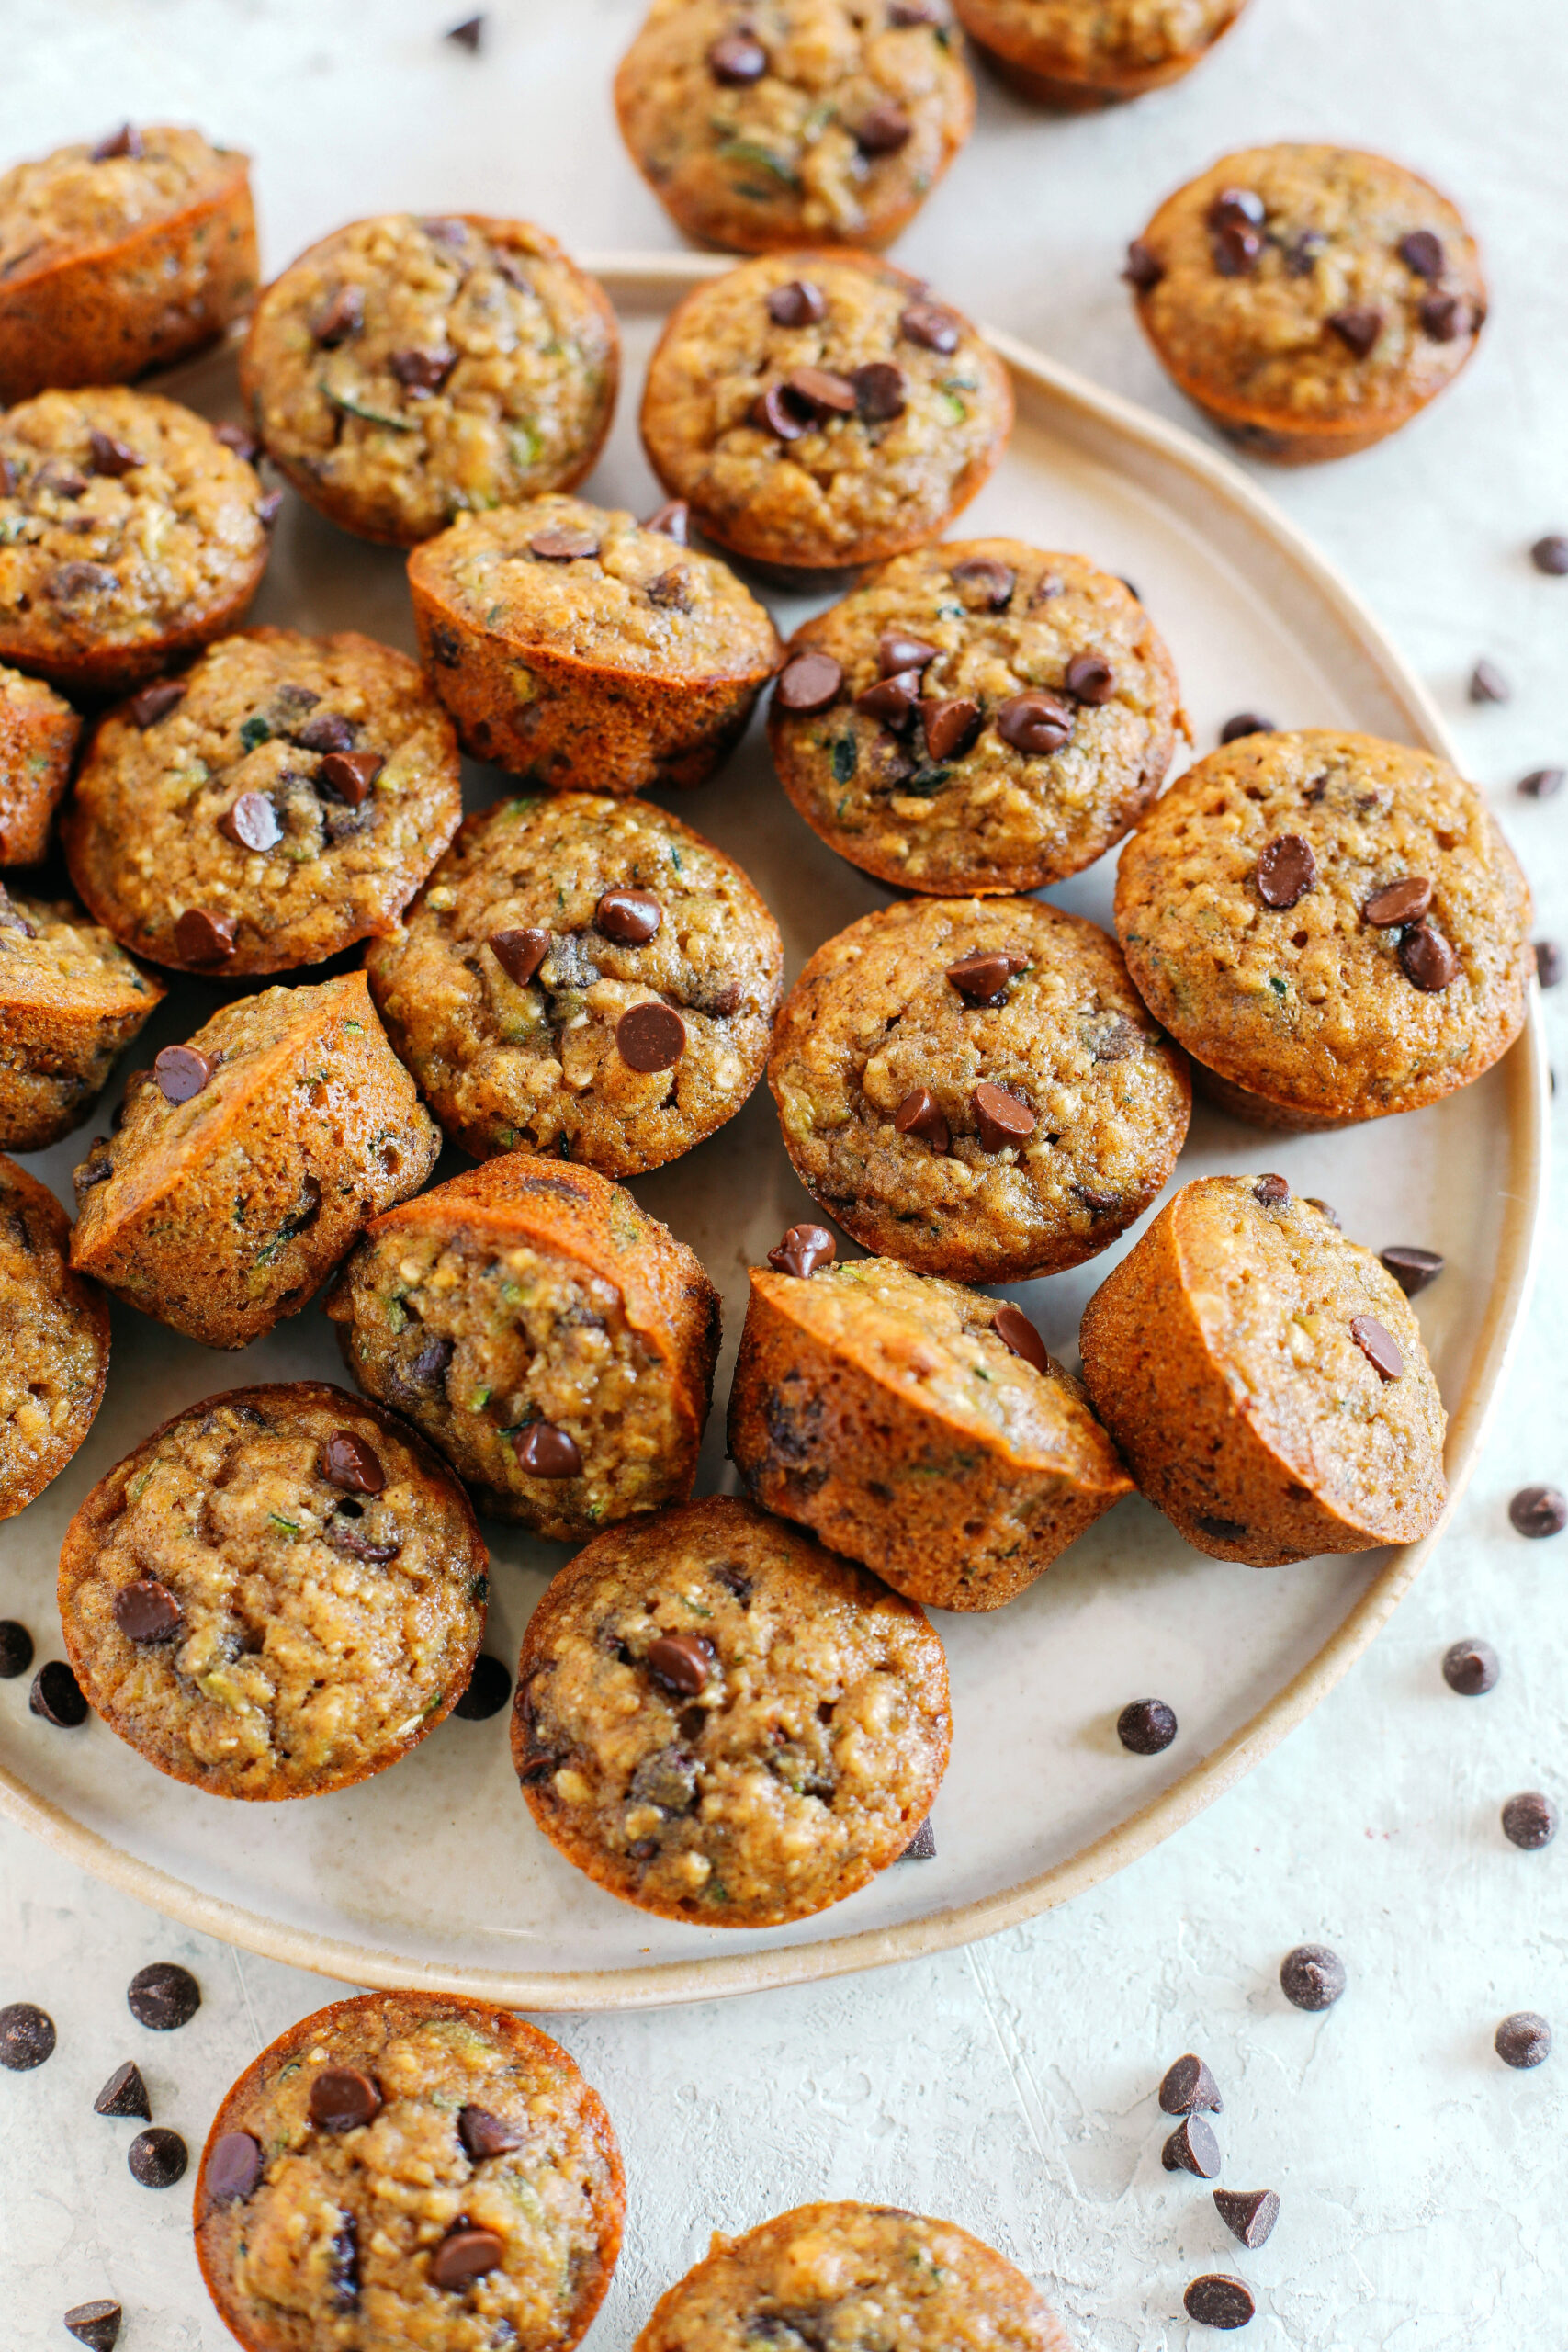 Healthy bite-sized Chocolate Chip Banana Zucchini Muffins that are moist and delicious with hidden veggies and naturally sweetened with banana and honey!